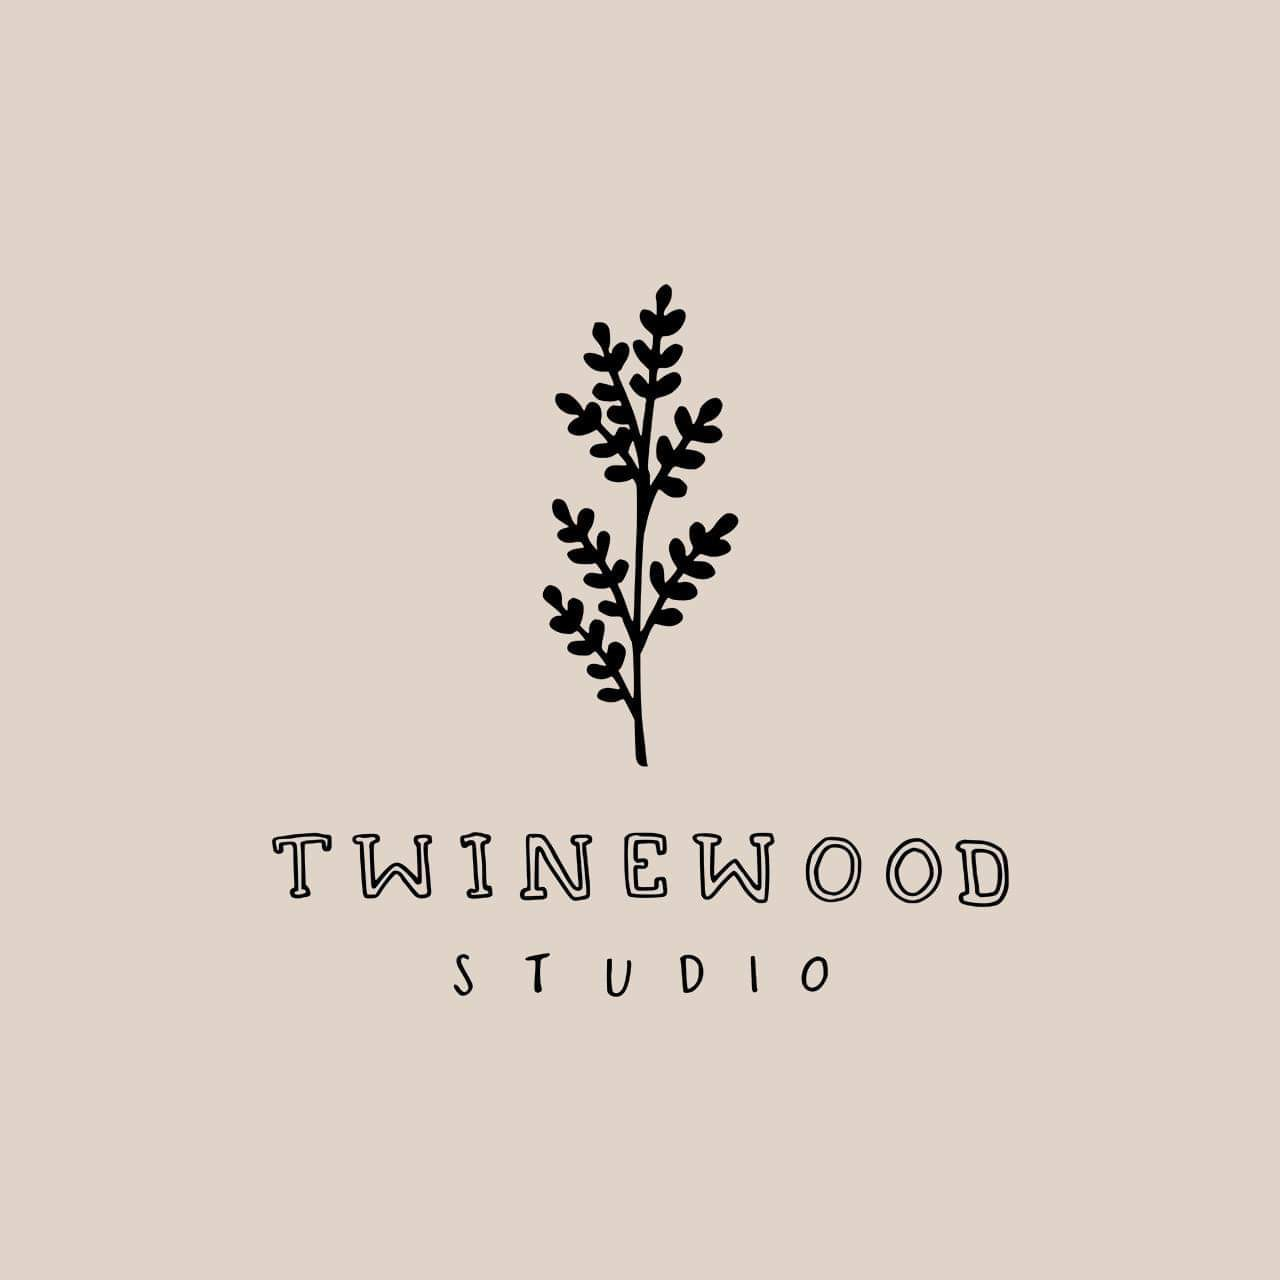 Go to Twinewood Studio's profile